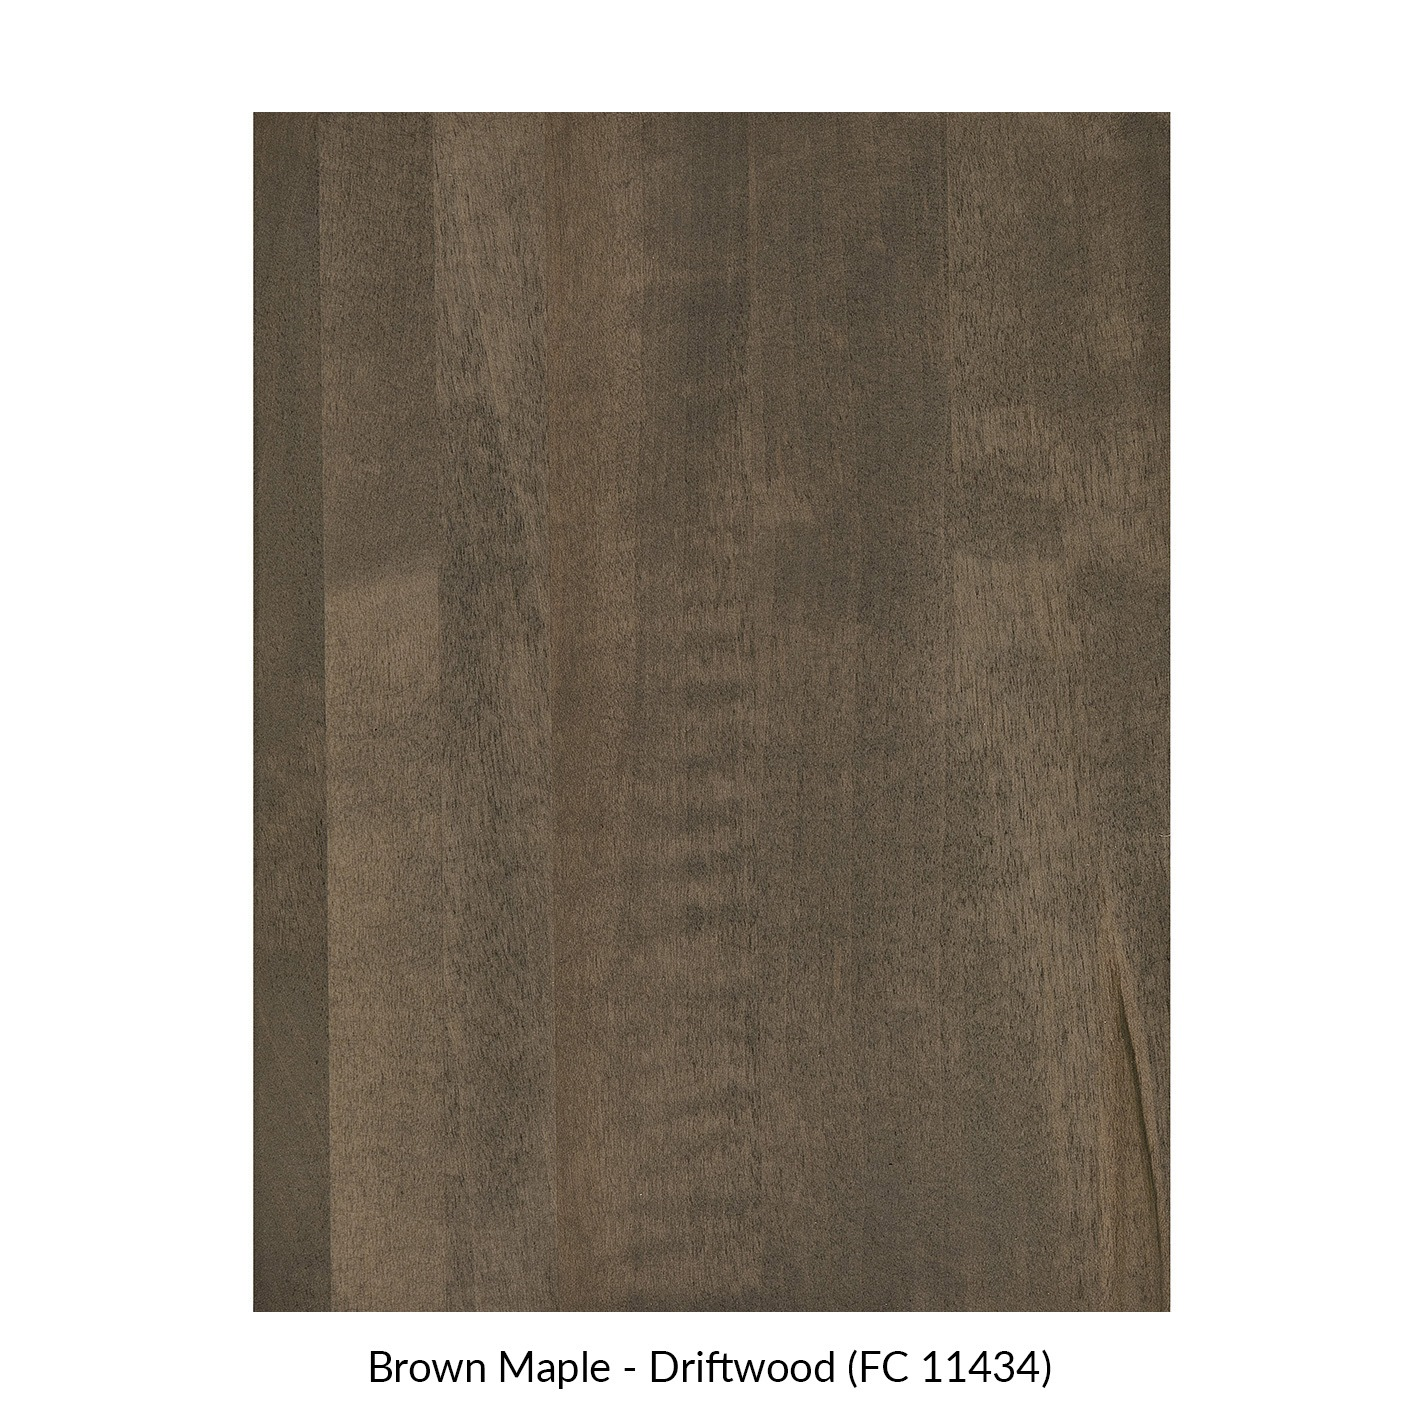 spectrum-brown-maple-driftwood-fc-11434.jpg